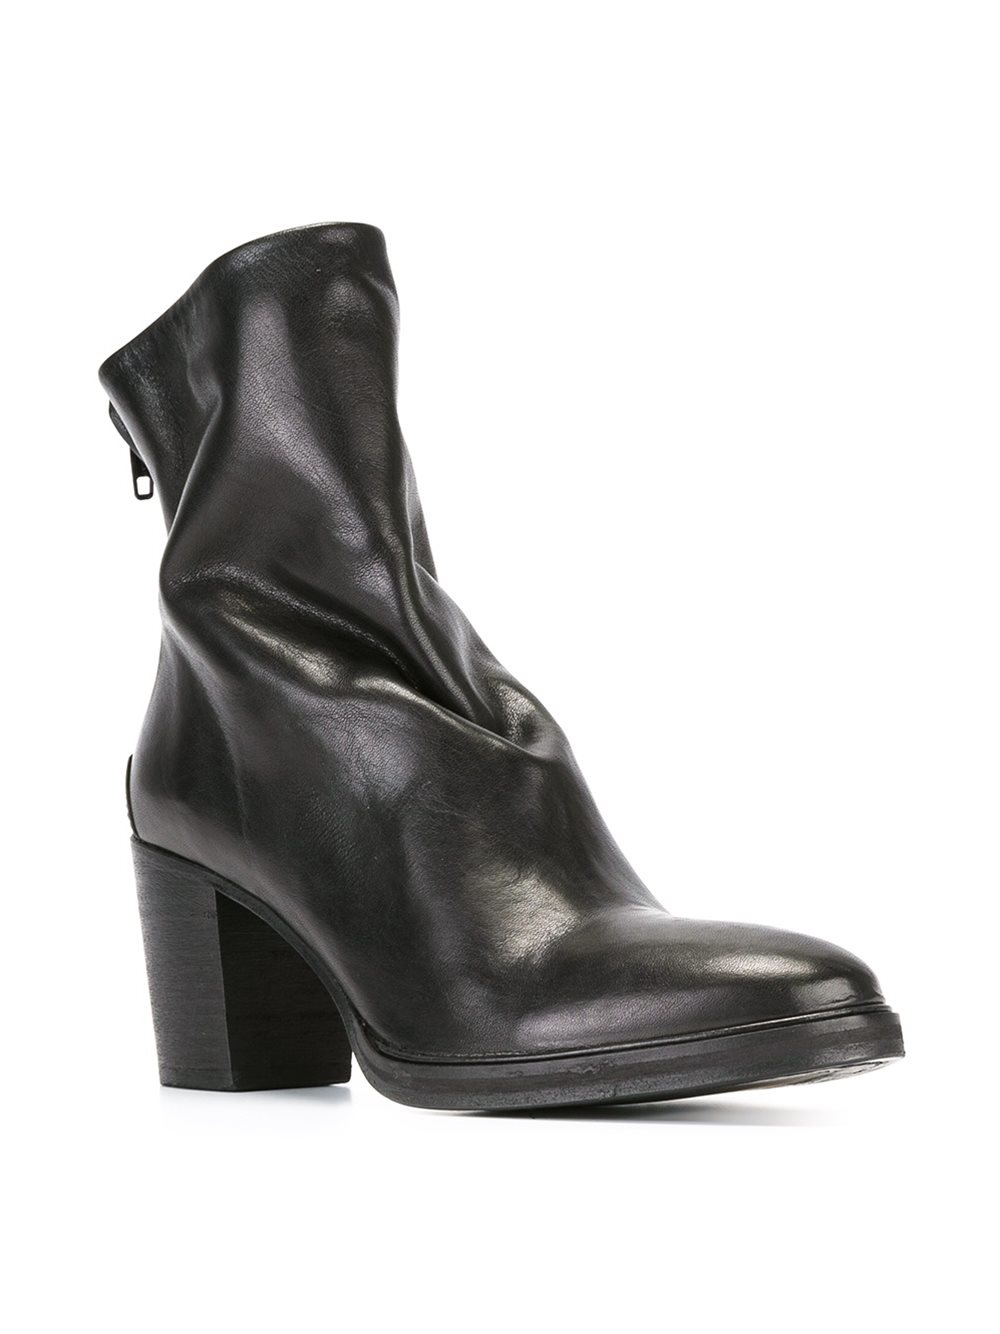 The Last ConspiracyRear zipped ankle boots